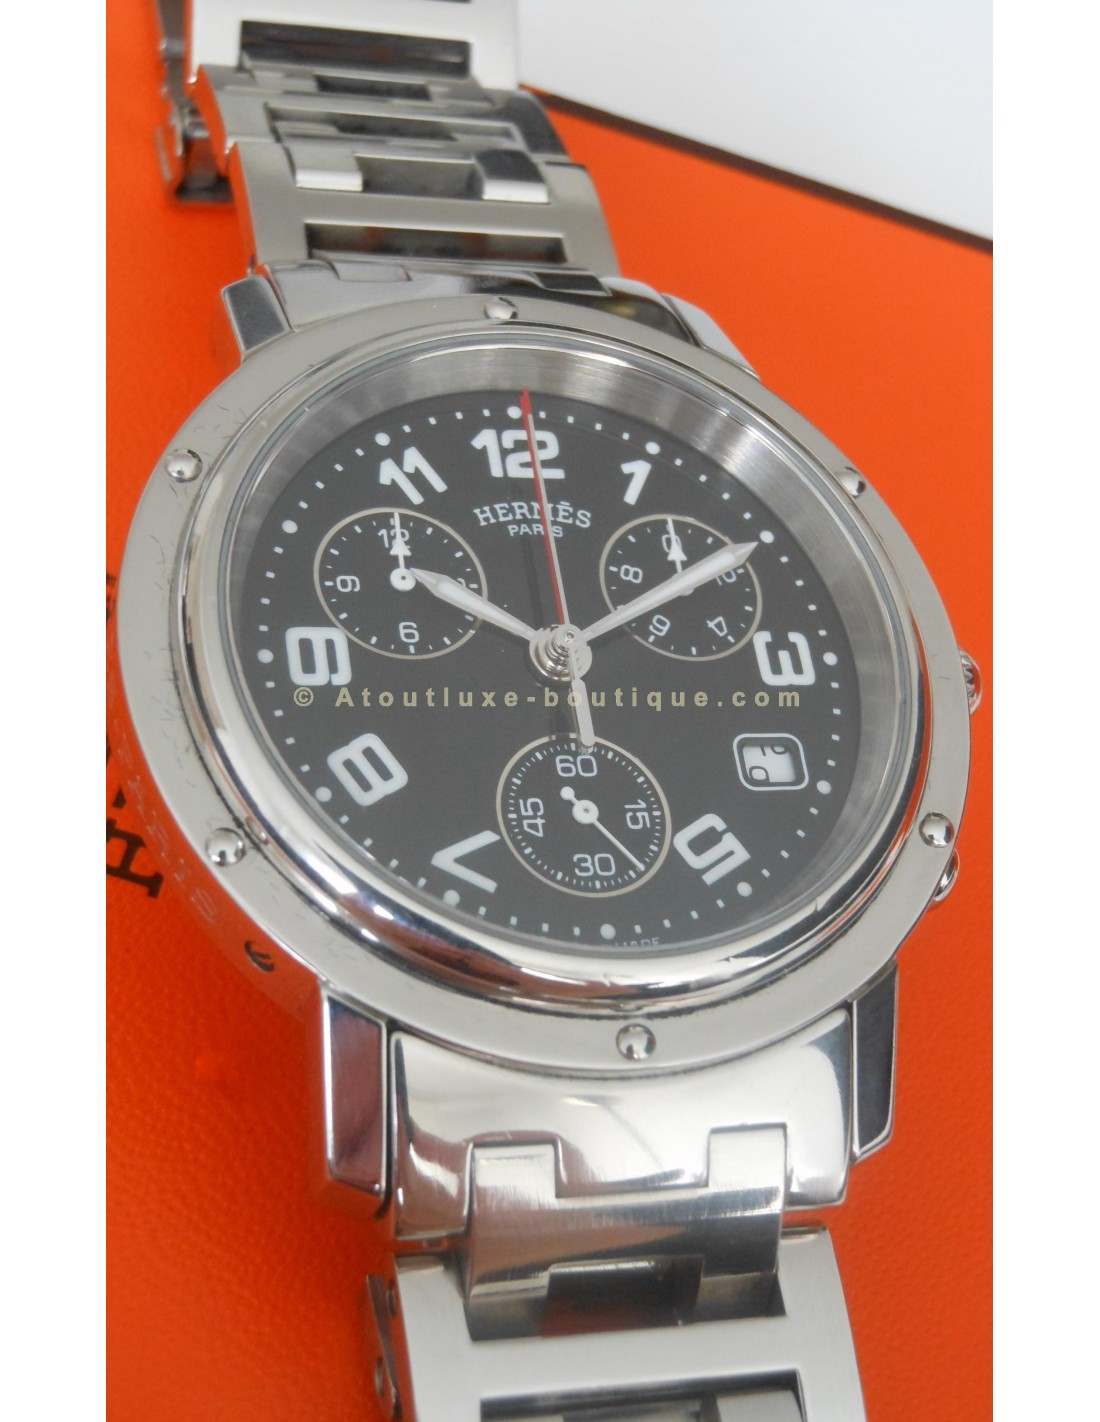 8893bdef5e MONTRE HERMES CLIPPER CHRONO HOMME - Atoutluxe Boutique